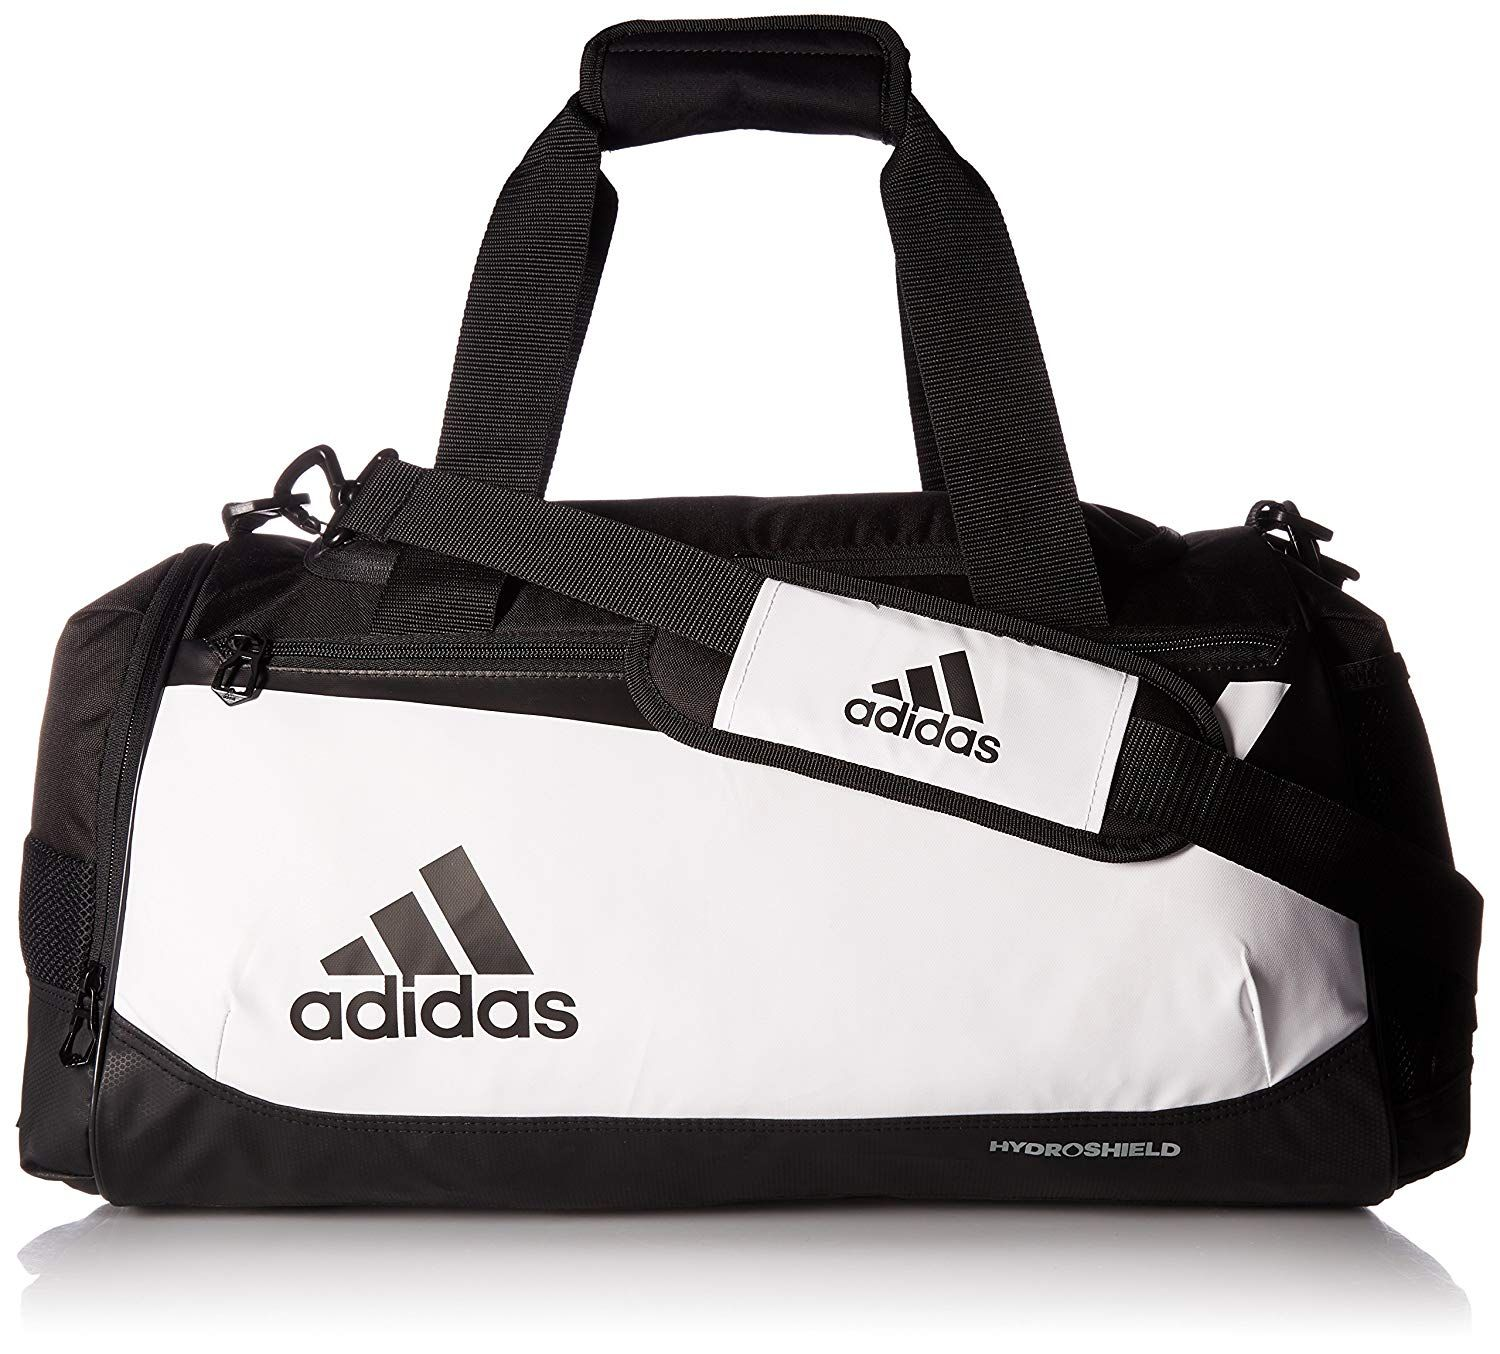 8c1348d190c8 Adidas Gym Bag | Men Gym Bag | Gym Essentials on Sale ( Amazon.com) - 29$